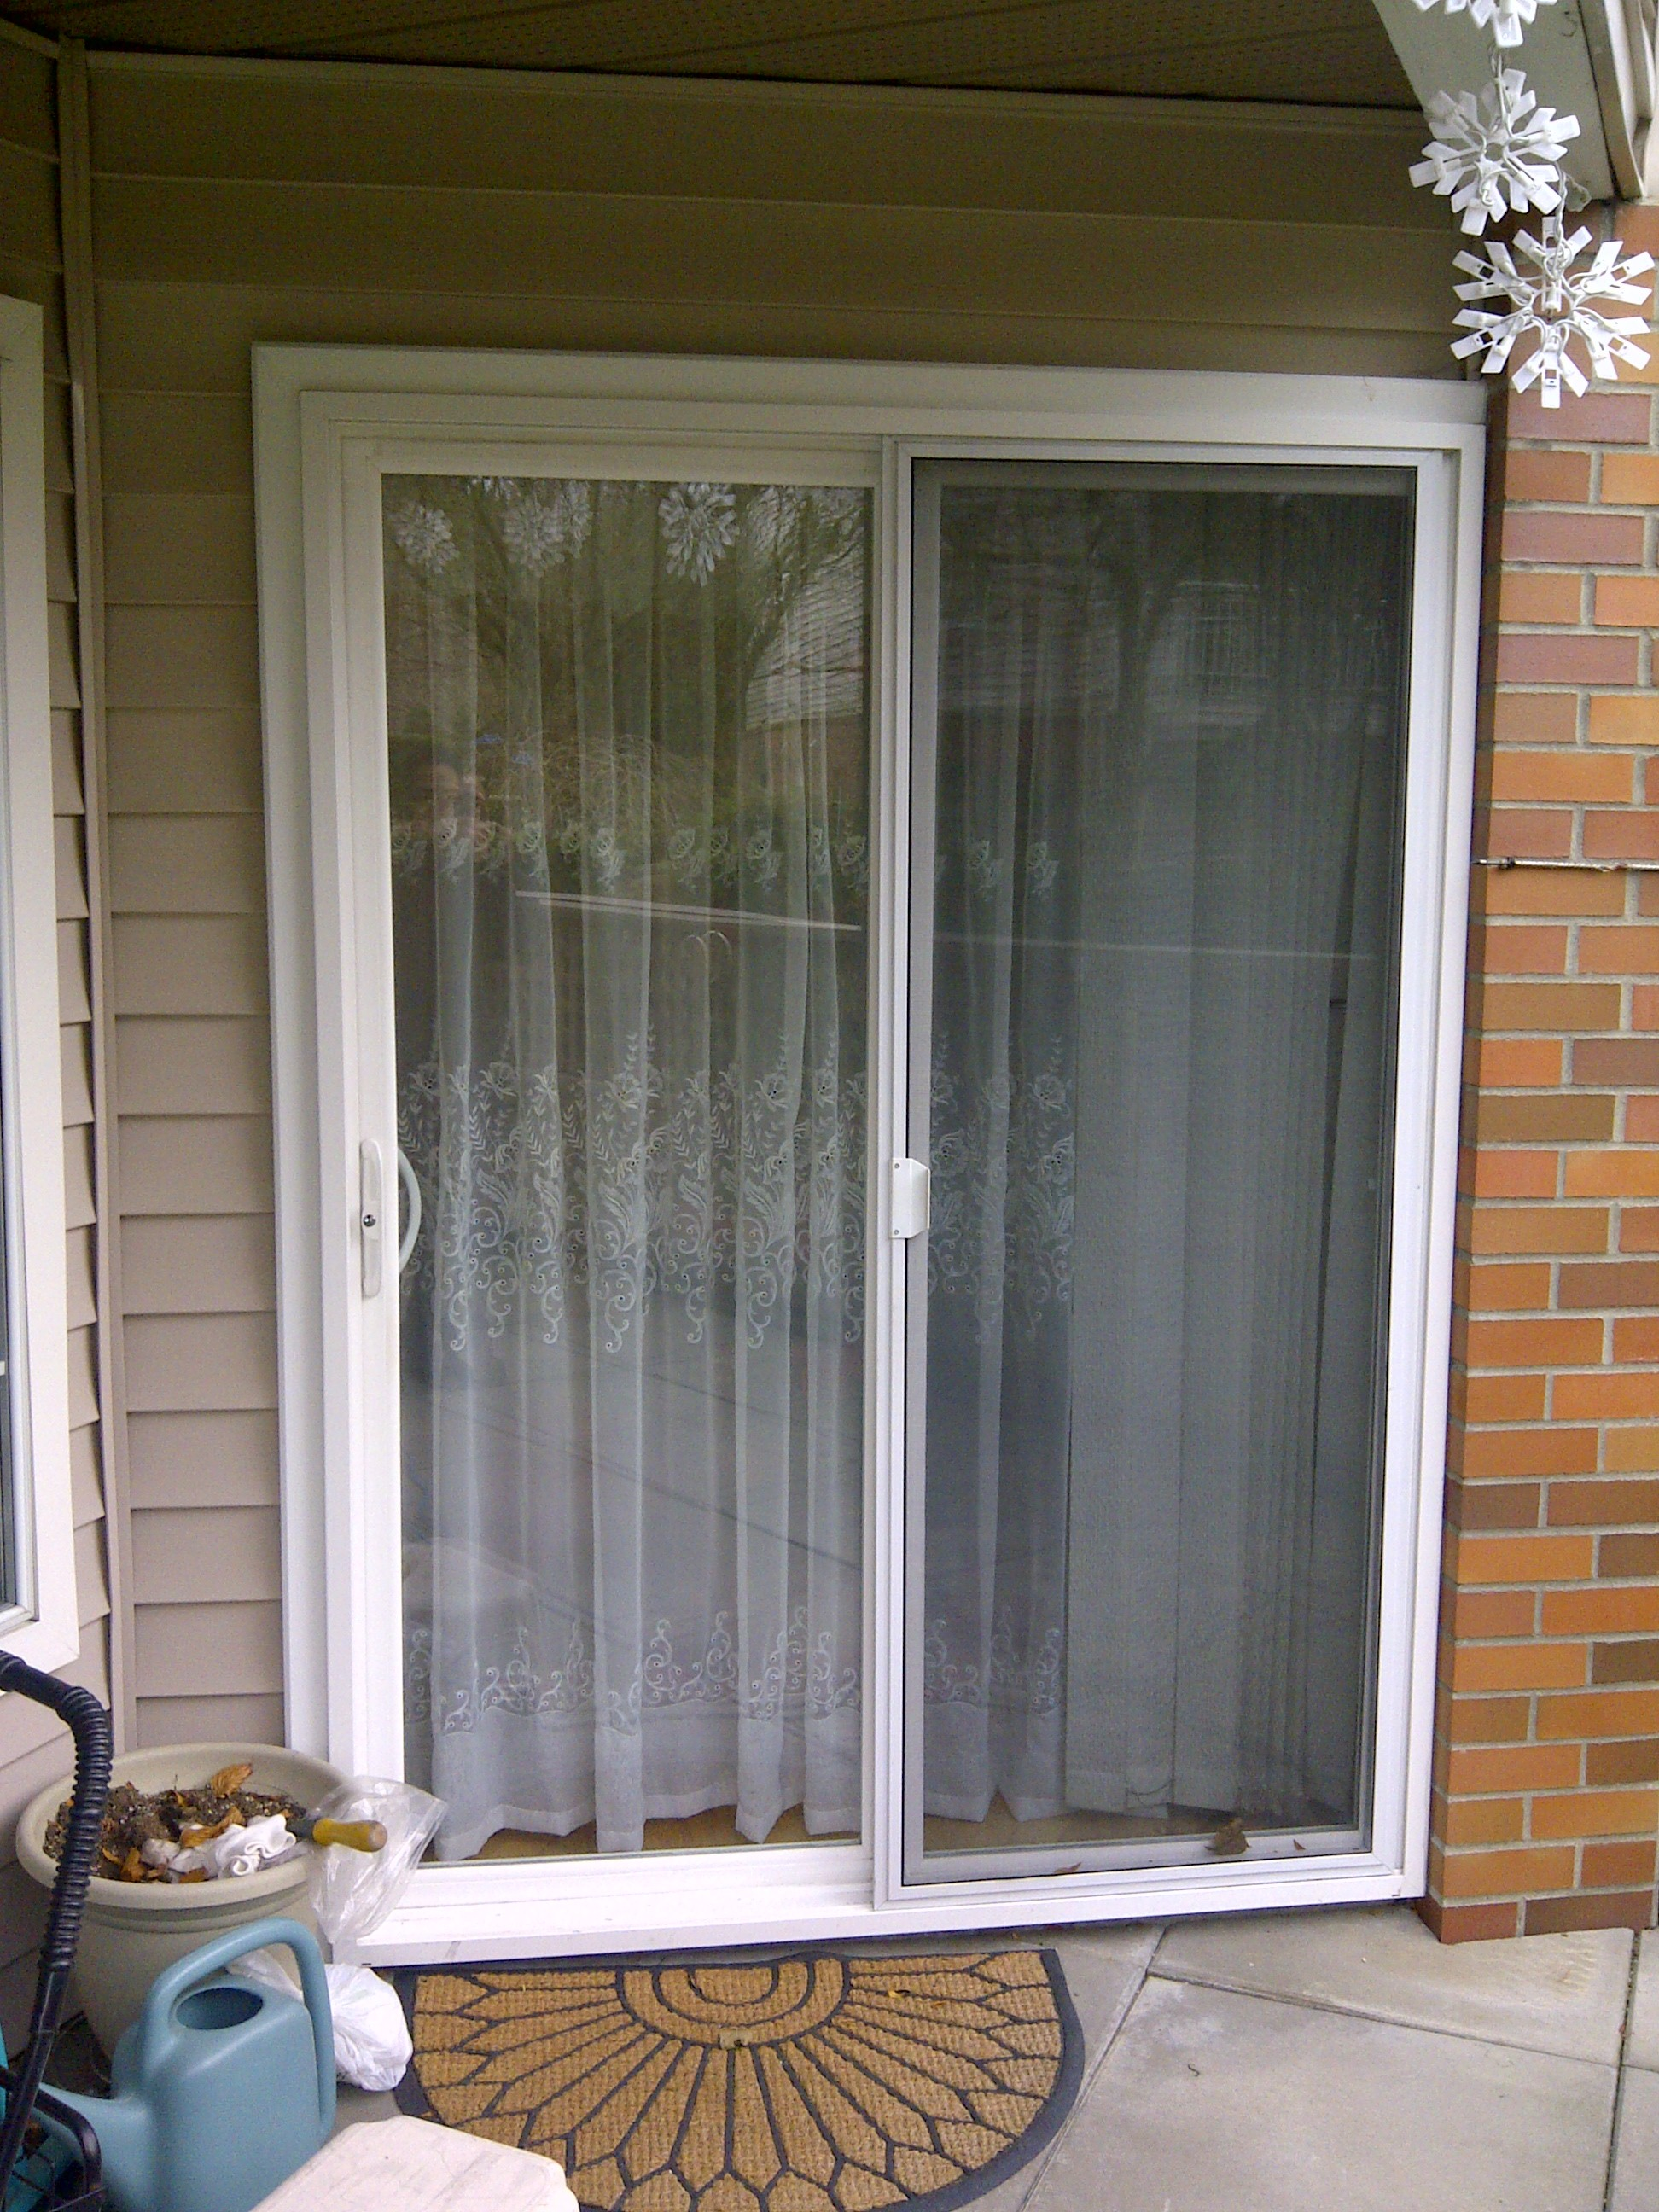 Vancouver glass door company work with us to design a Doors for patio